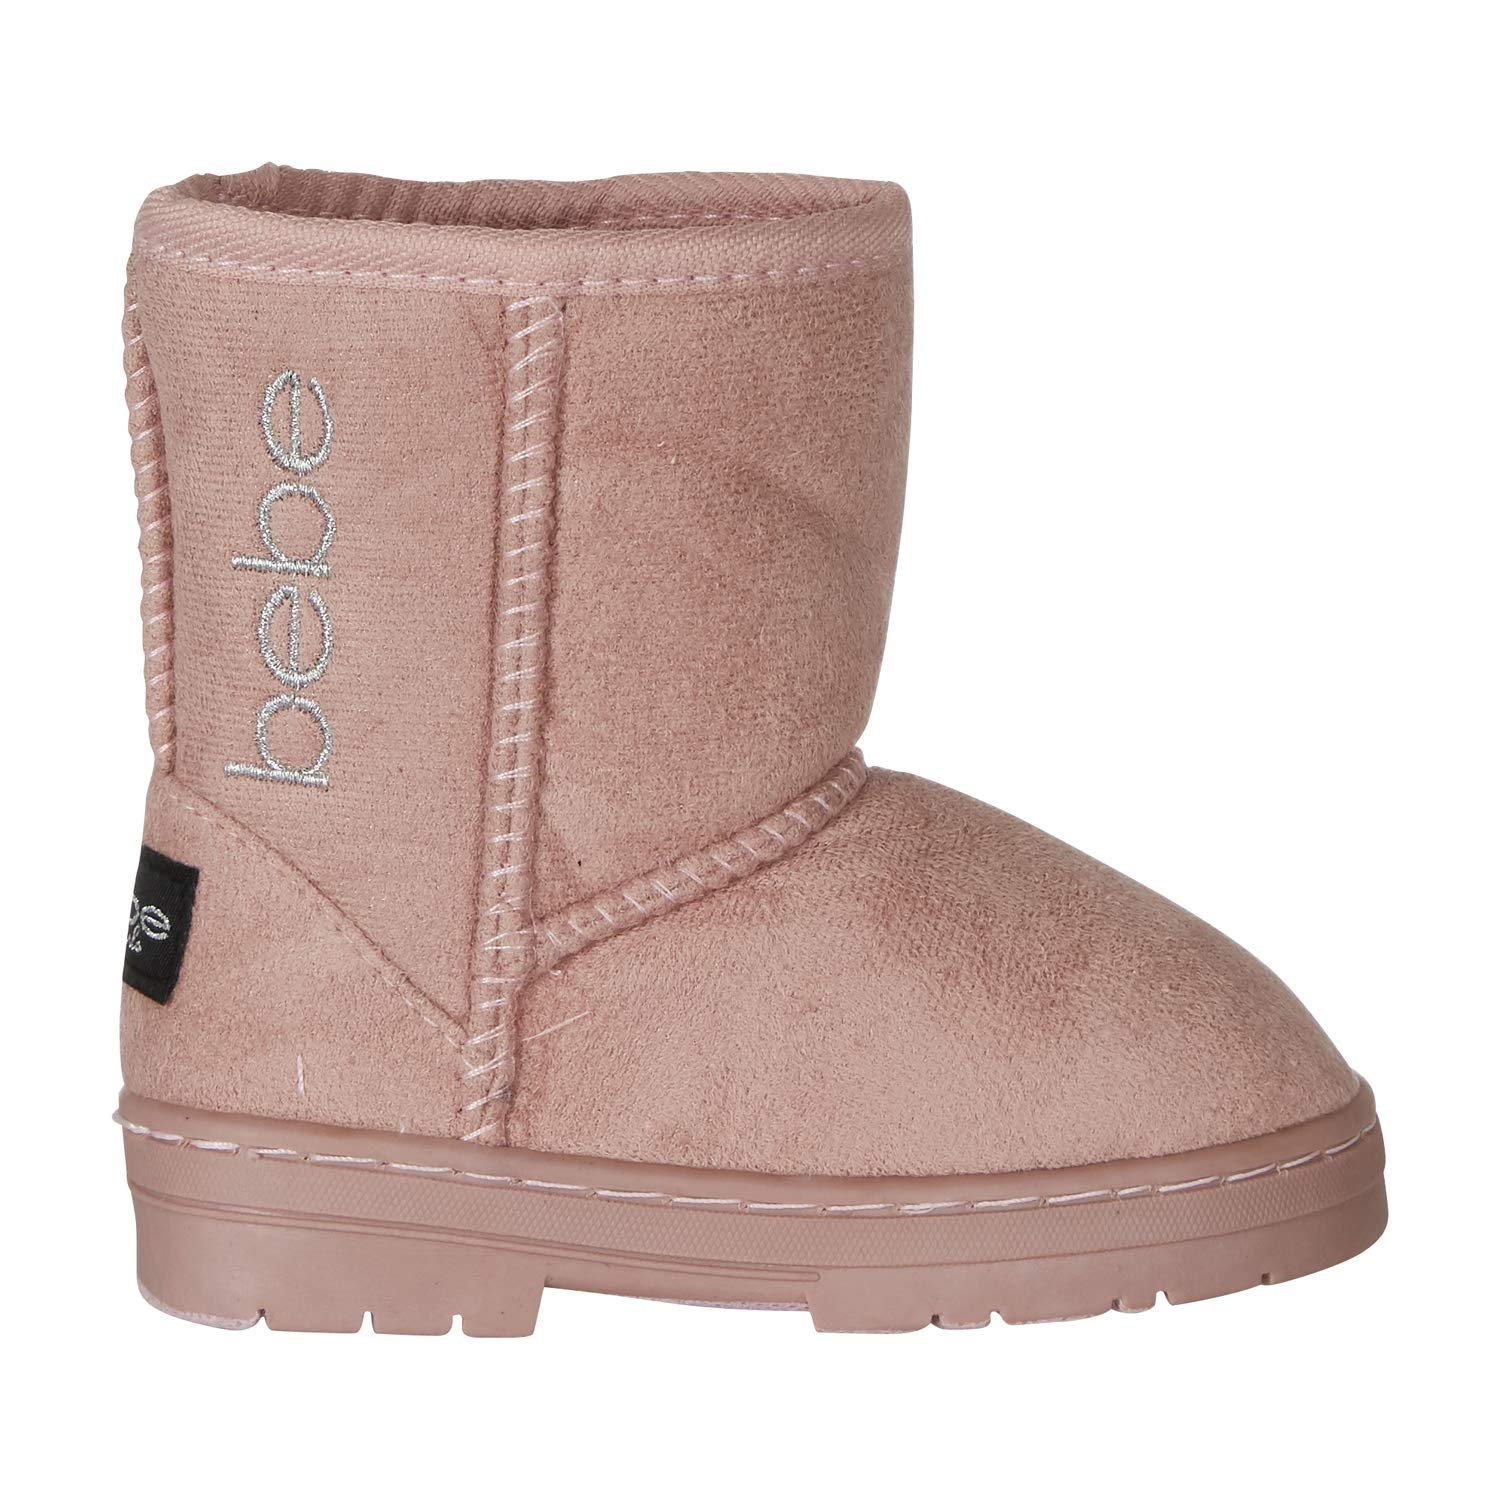 bebe Toddler Girls Winter Boots Size 6